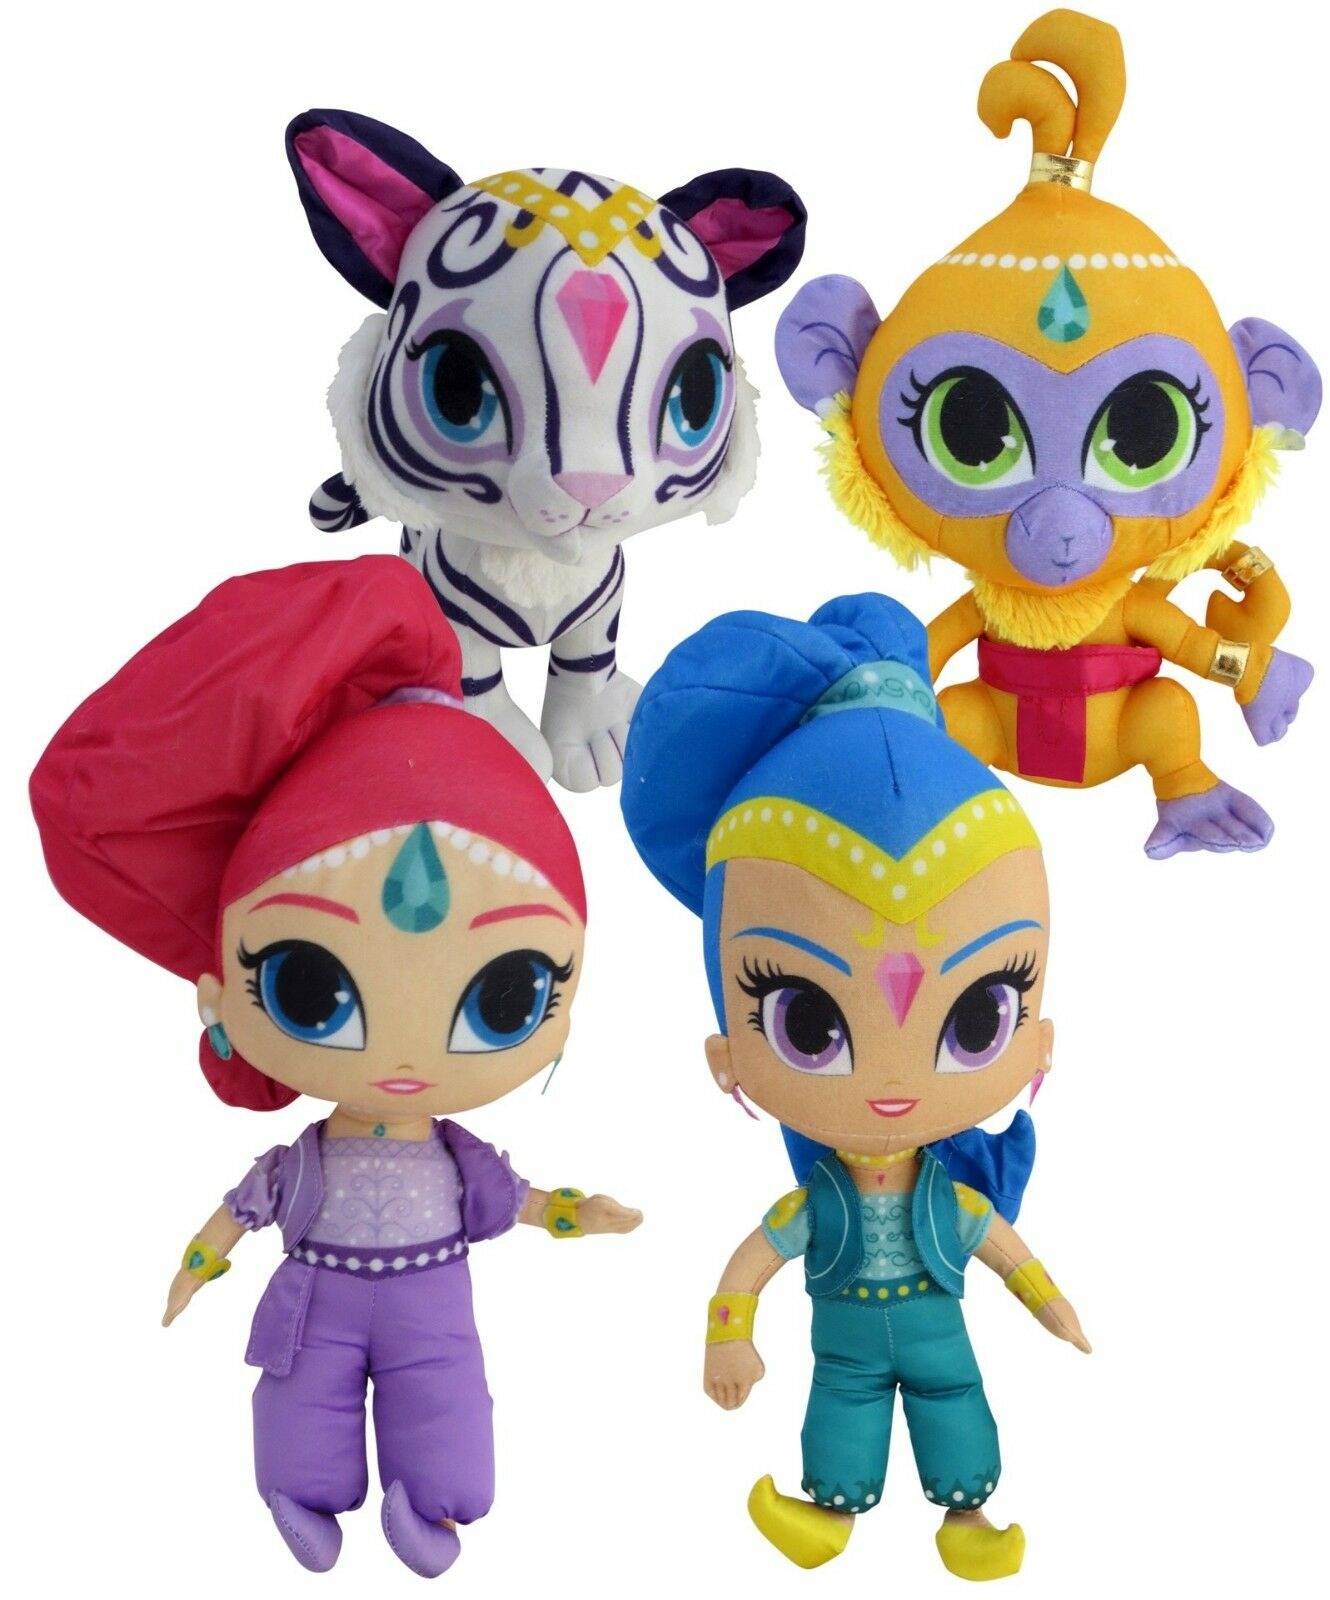 Nickelodeon Shimmer and Shine Set of 4 Plush Soft Stuffed Doll 30 cm tall